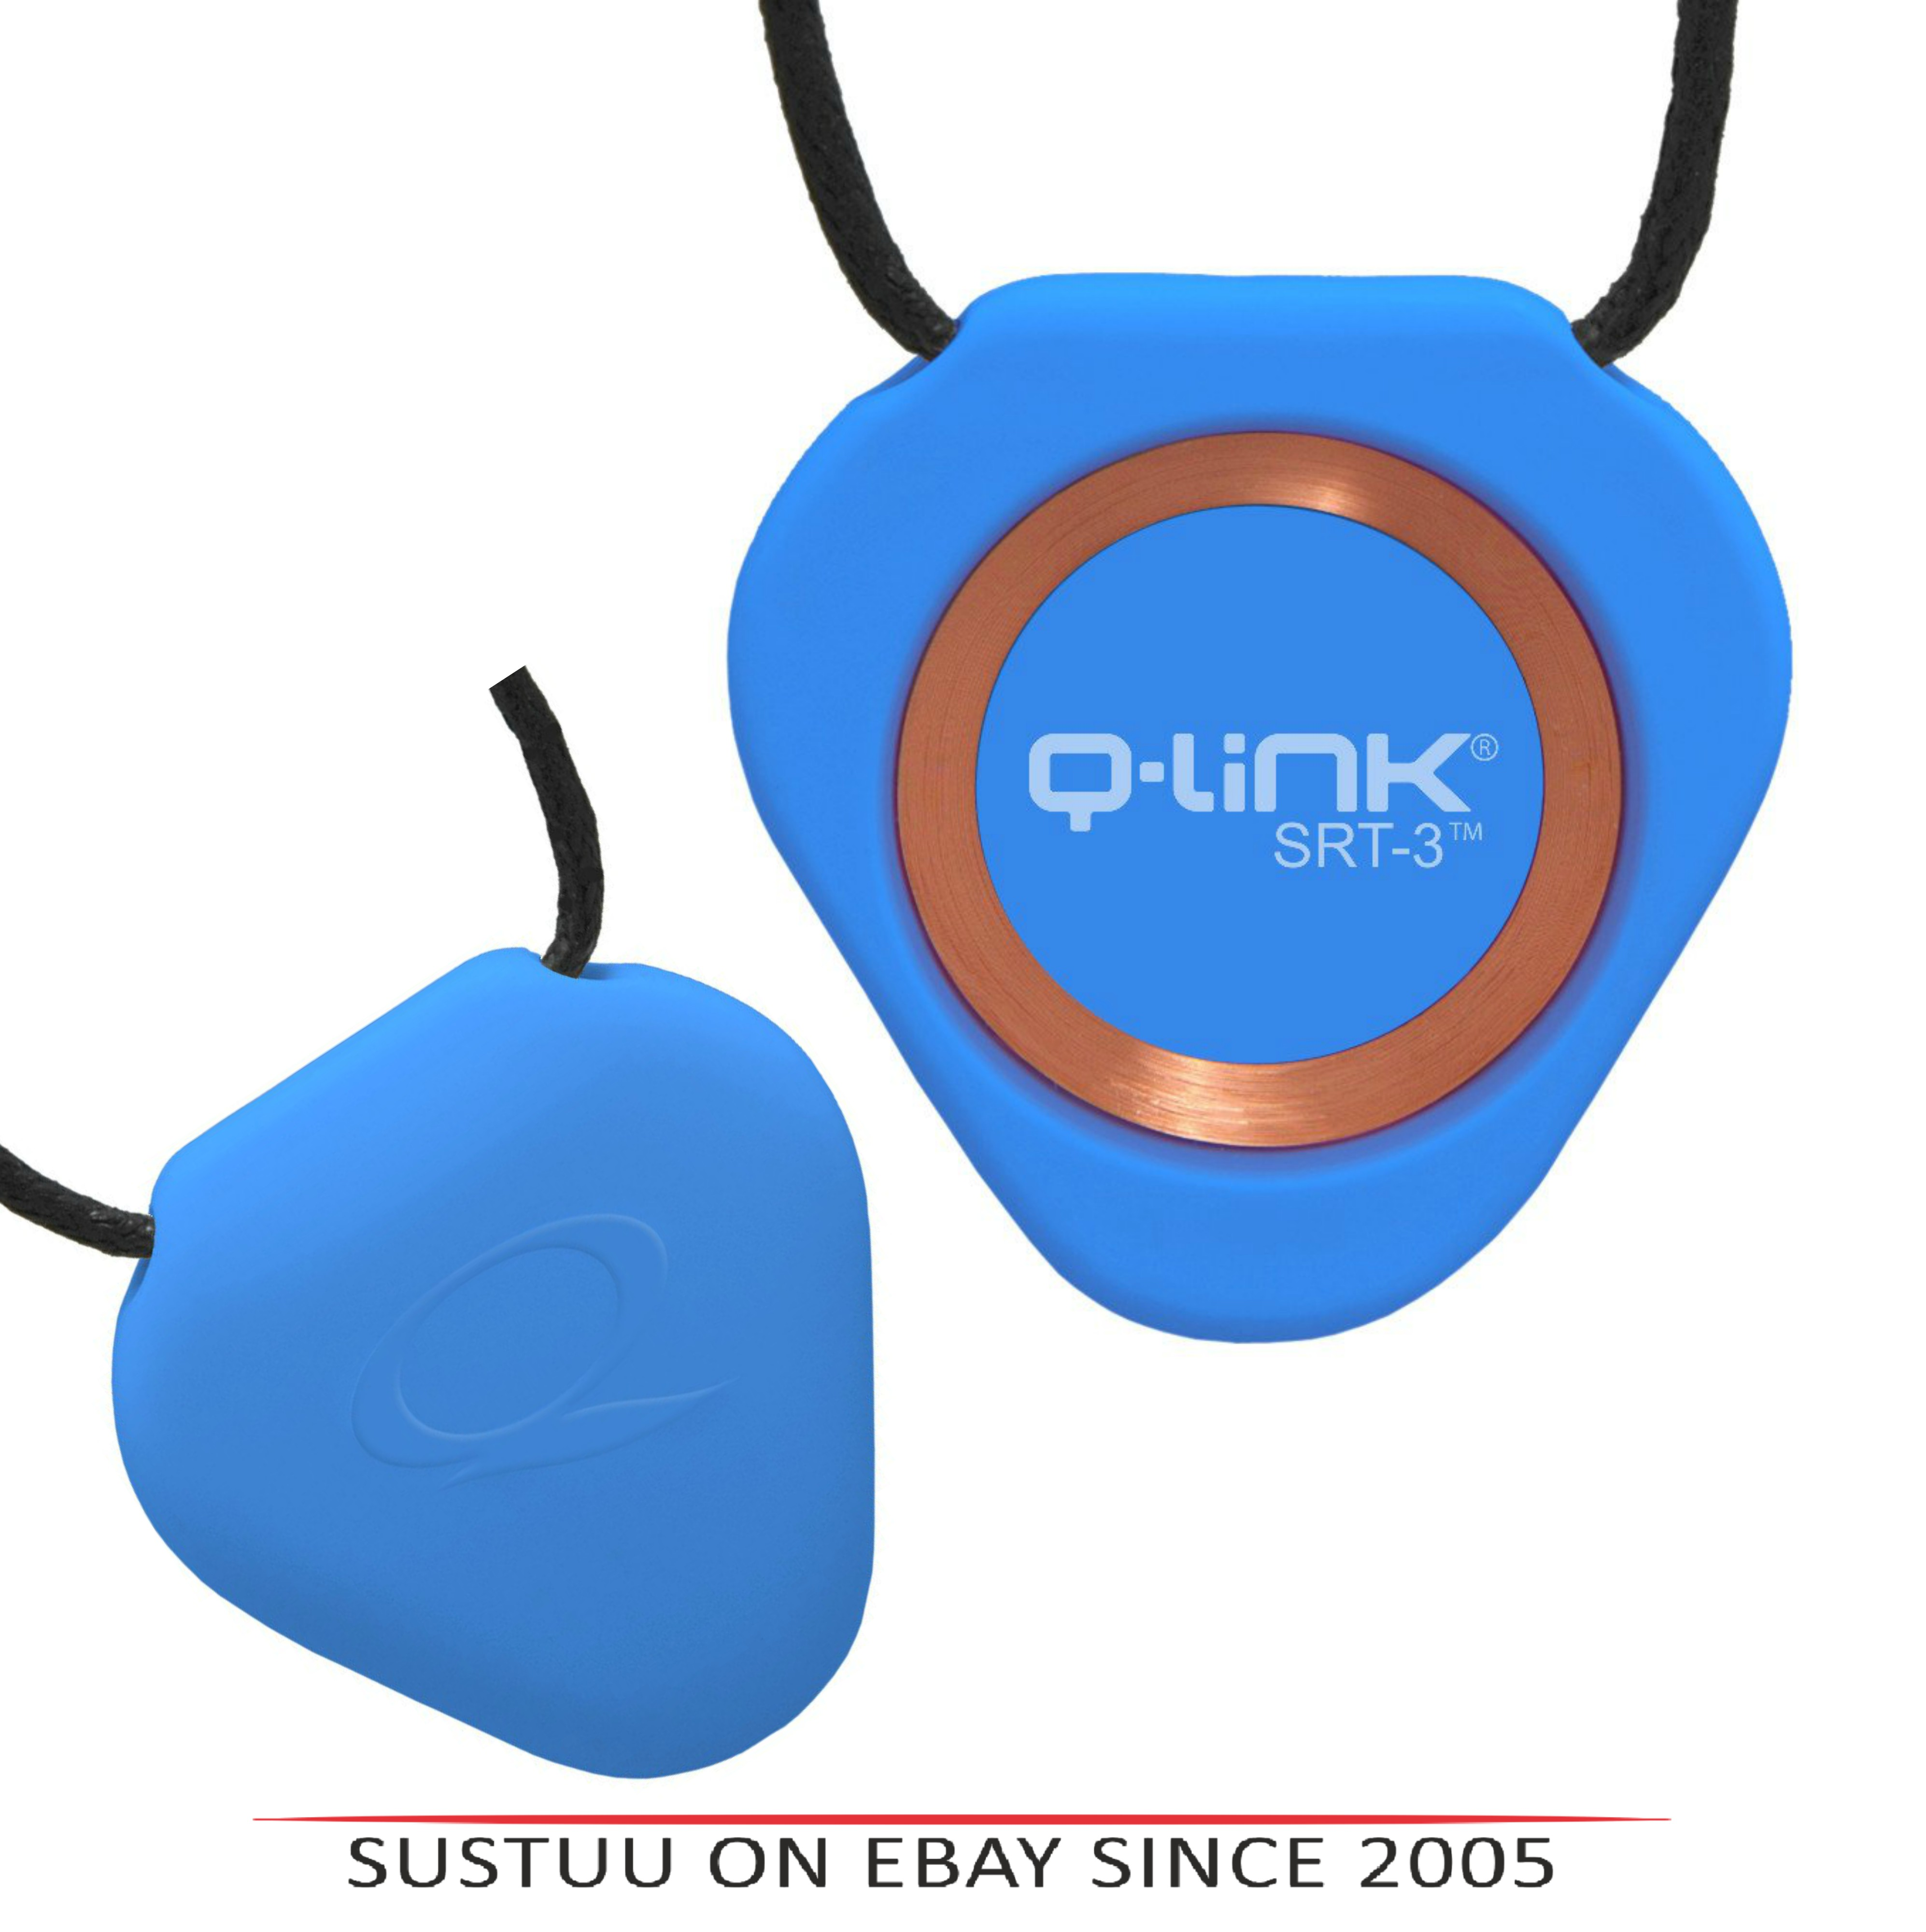 Q-Link Acrylic SRT-3 Triangle Pendant-Aura Blue|For Human Fitness-Peace & Mind